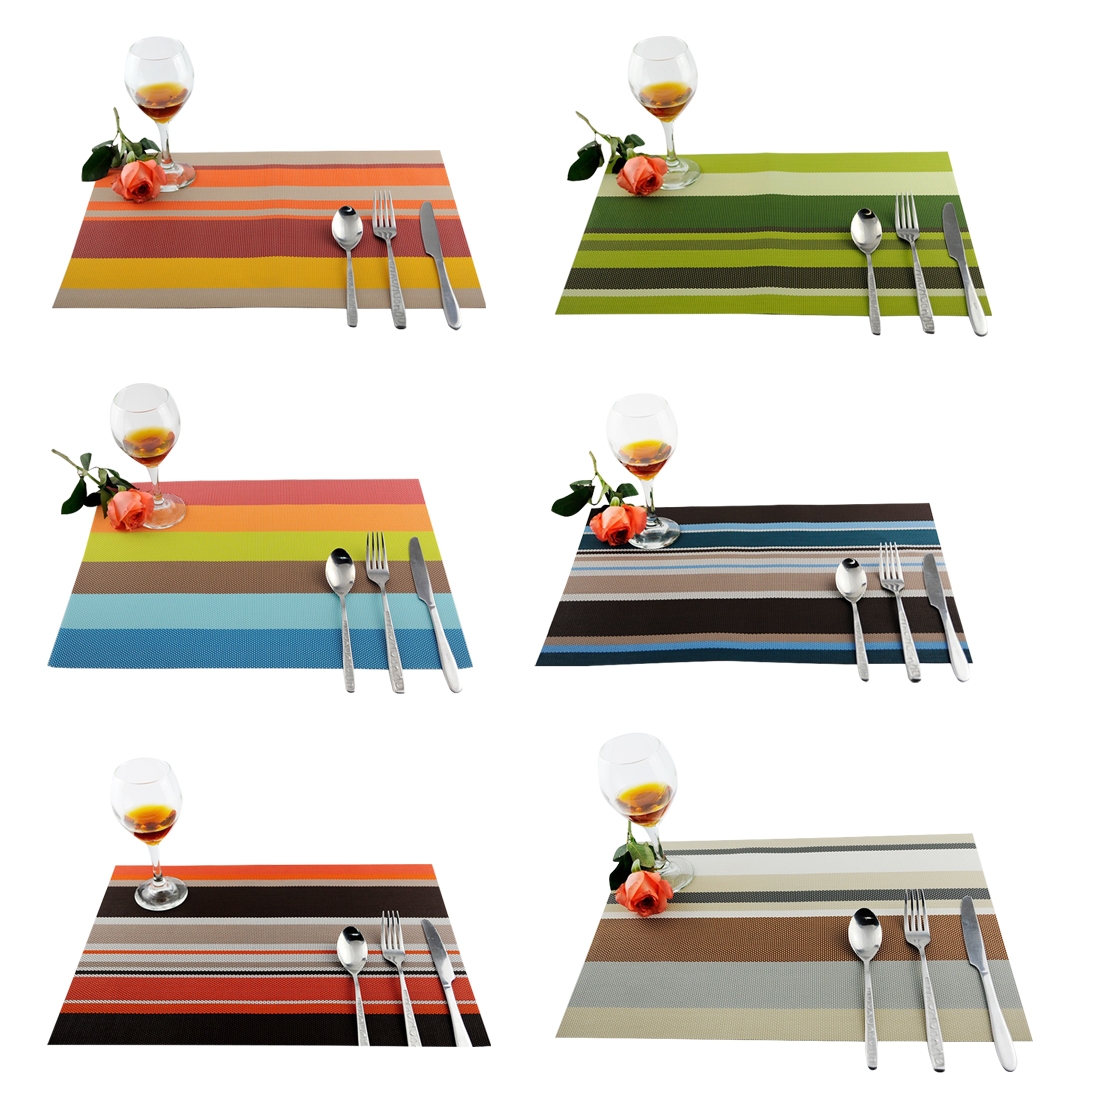 Pvc Placemat For Kitchen Dining Table Mat Non Slip